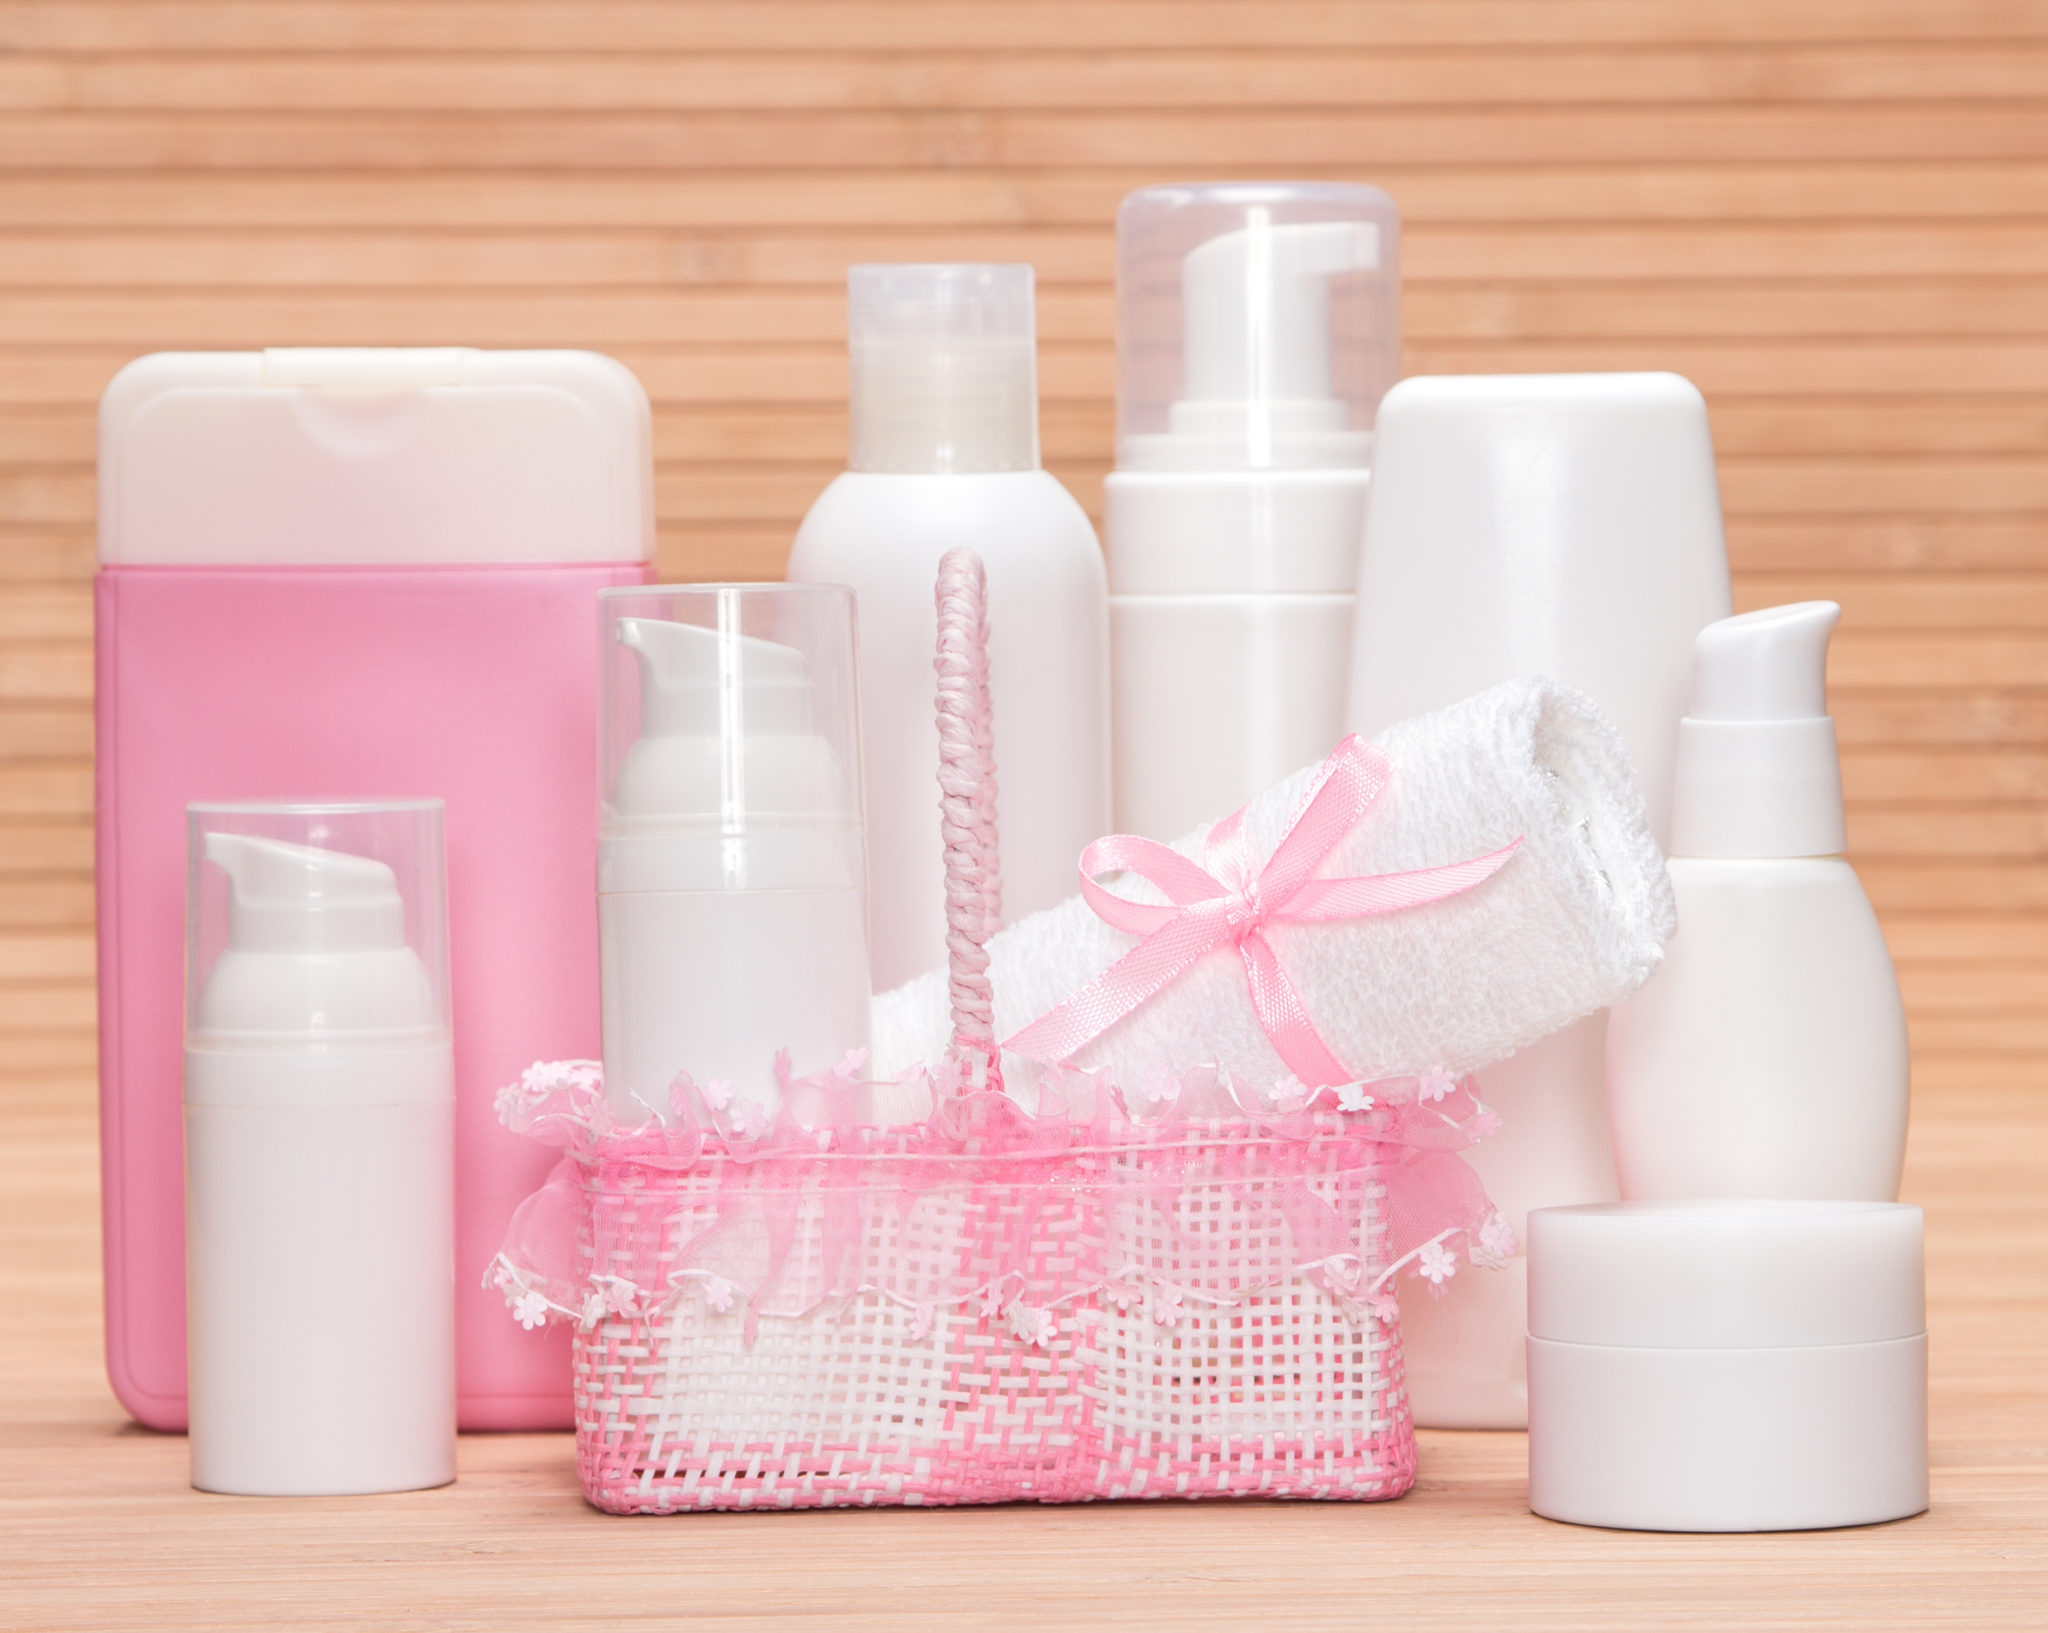 Best Baby Skin Care Products: Soaps, Shampoos, Lotions and Detergents | Baby Pibu